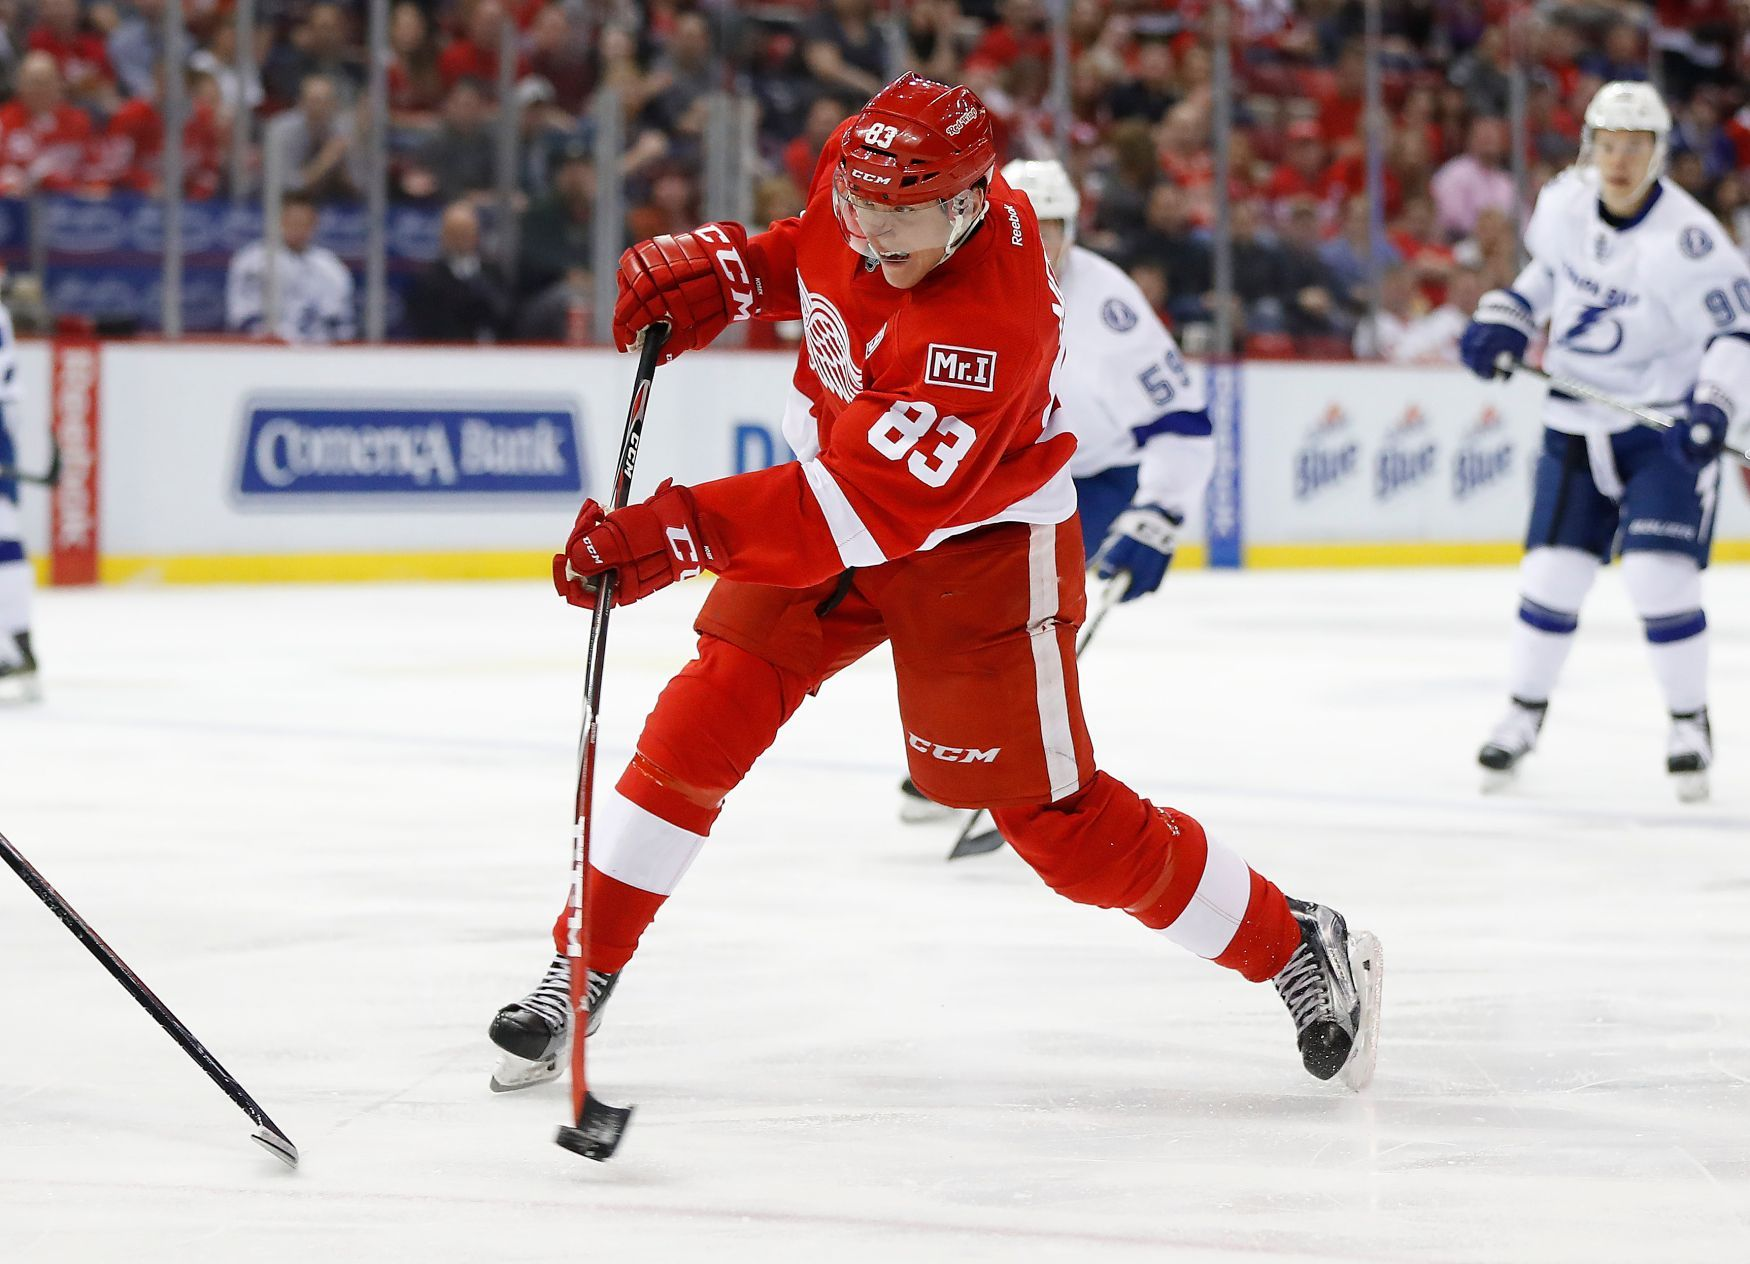 Tomáš Nosek, Deroit Red Wings, NHL 2016/18